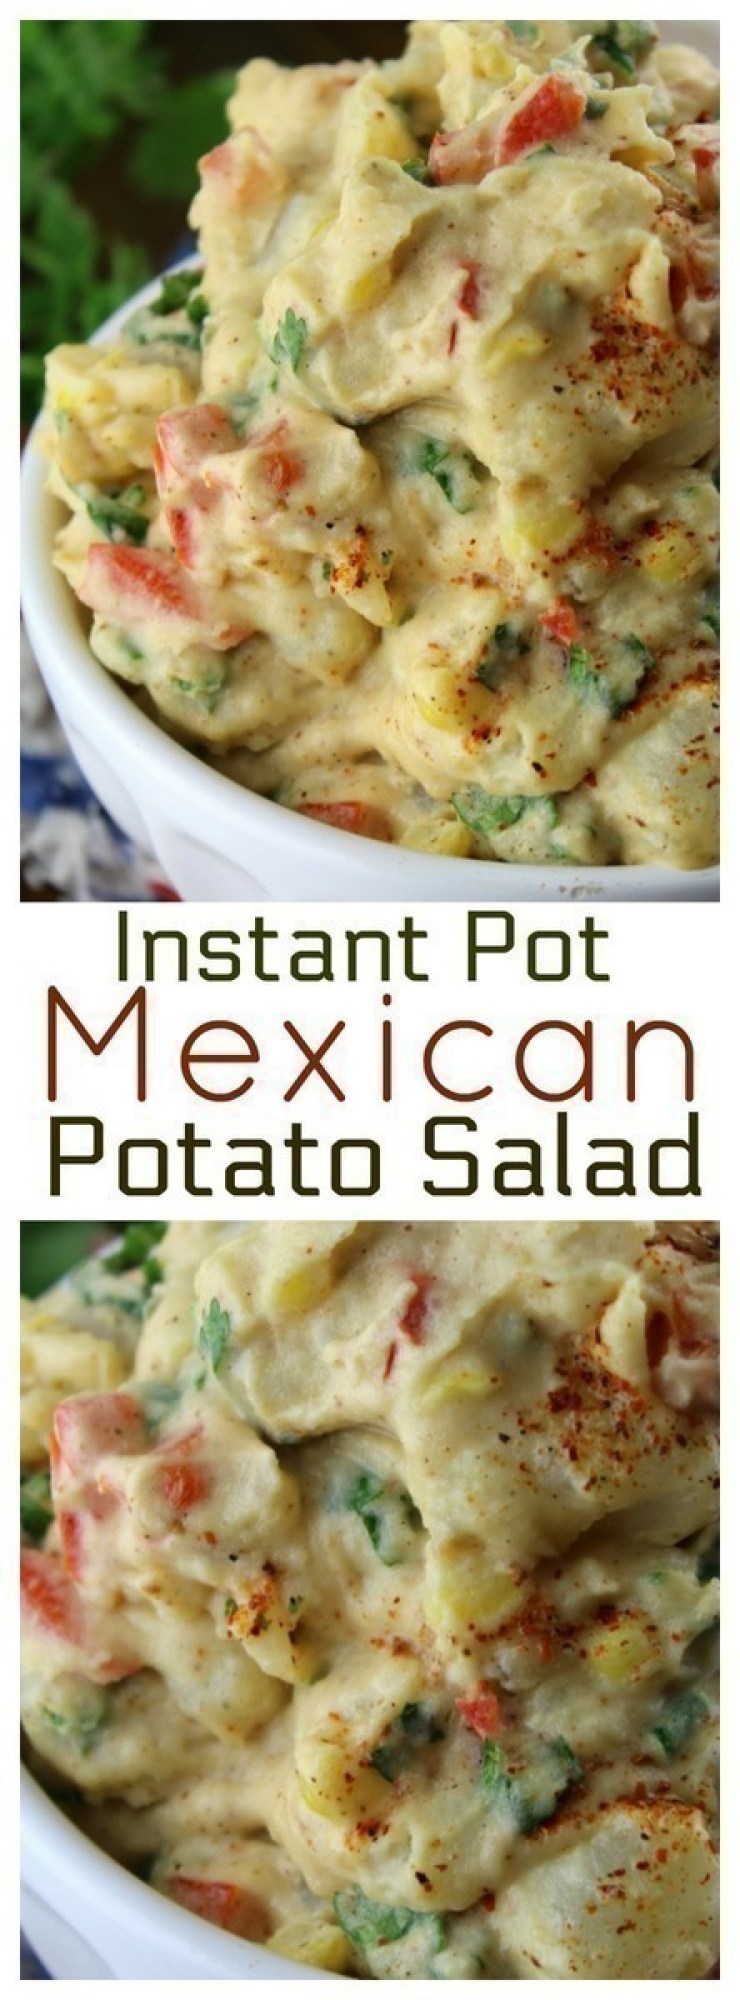 A delicious combination of Mexican spices, mayonnaise and fresh veggies coat potatoes for a twist on traditional potato salad.